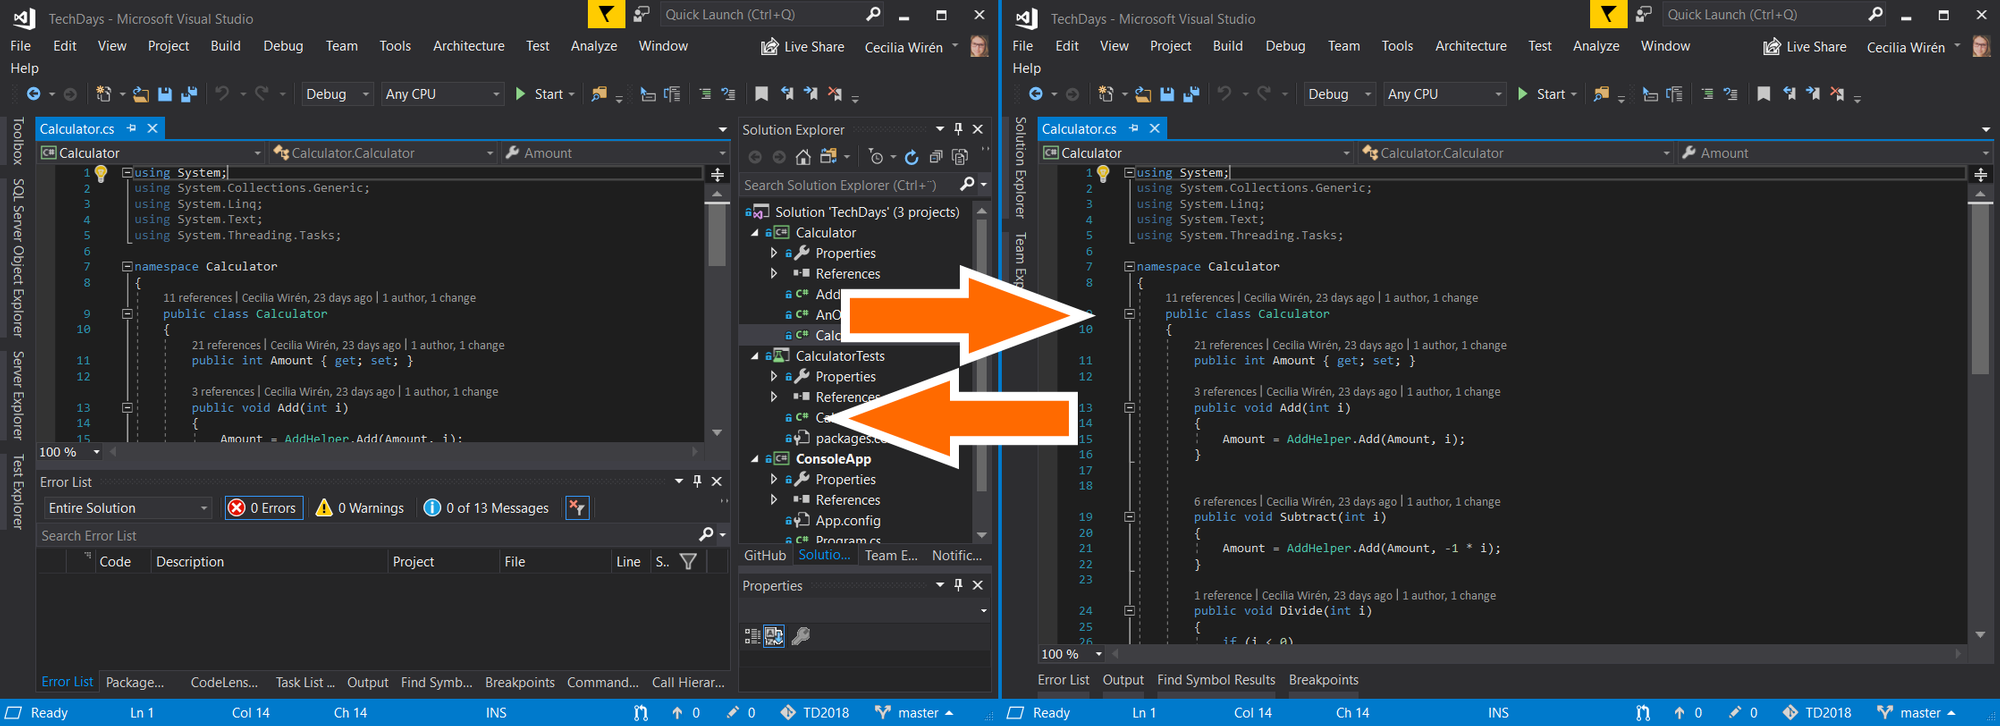 Save Visual Studio layouts and switch between them